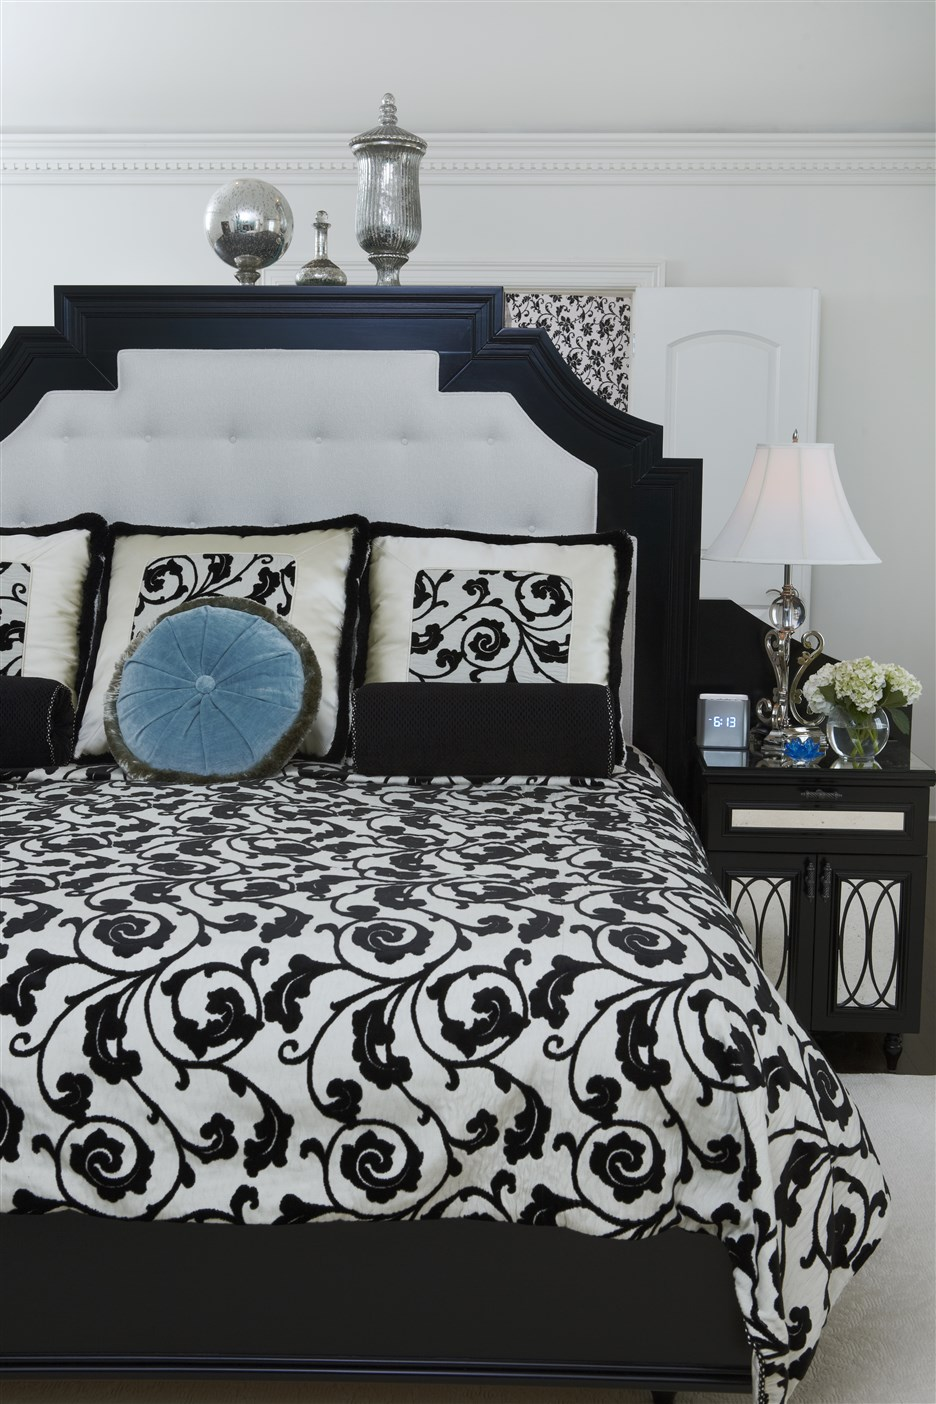 Bed with white headboard beside night lamp